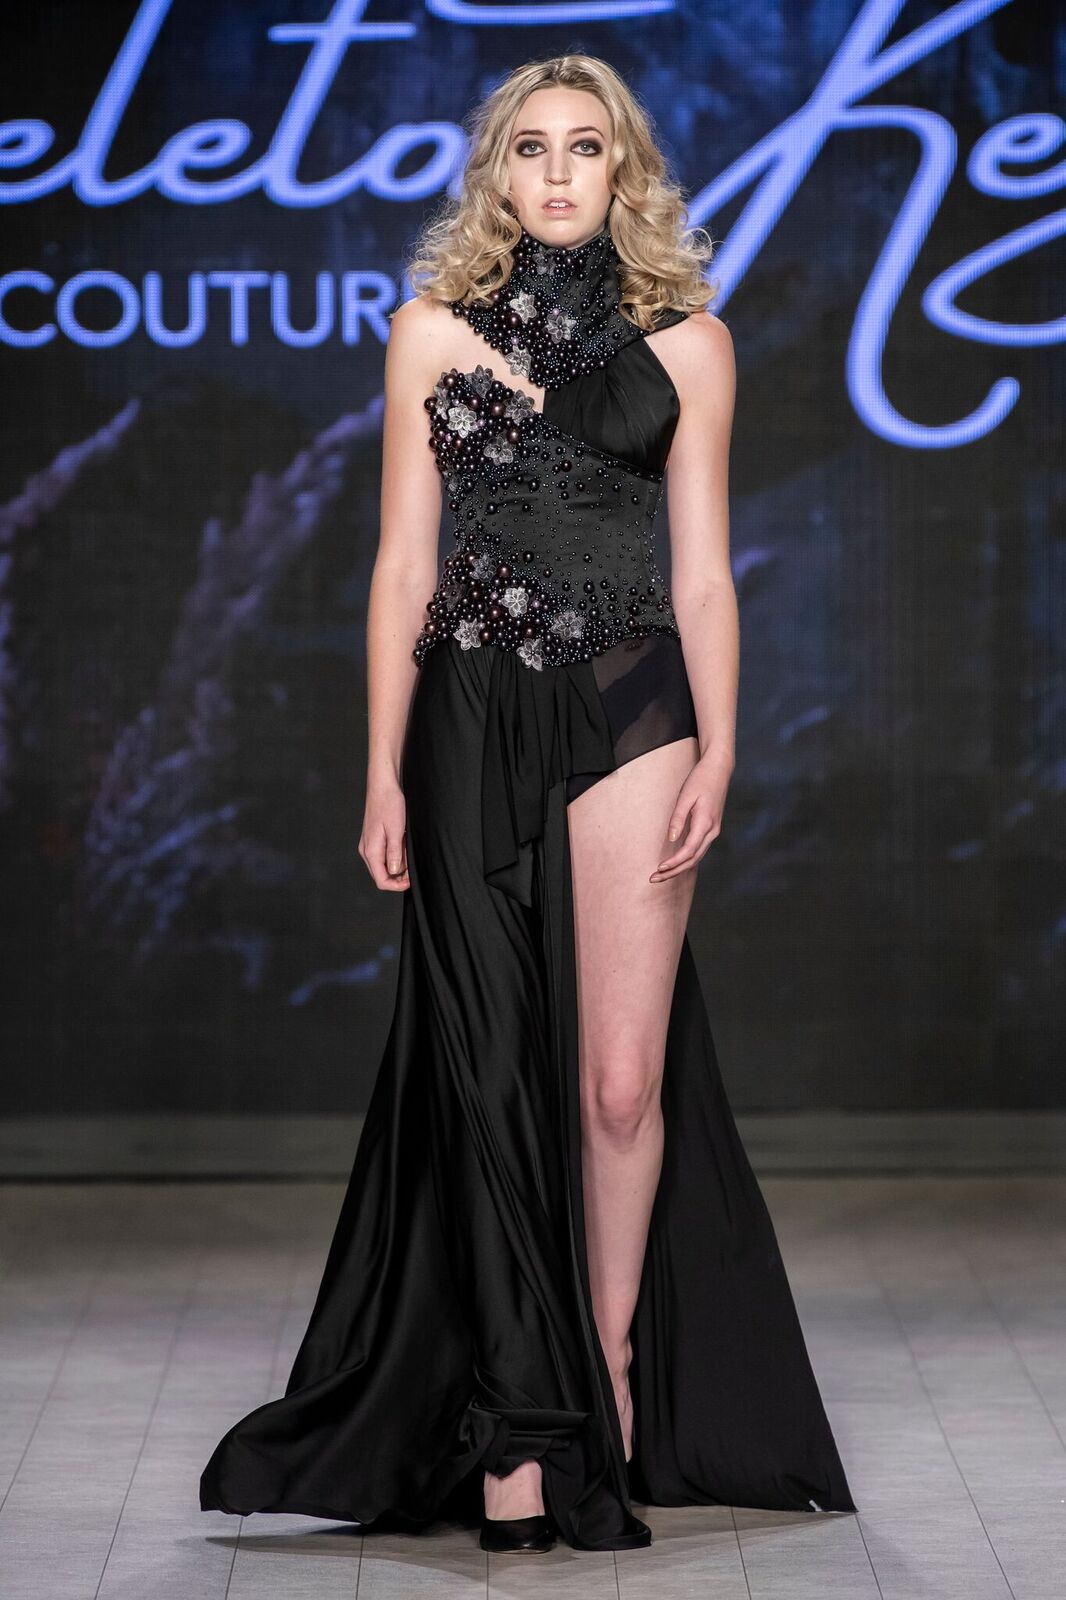 Skeleton Key Couture specializes - Vancouver fashion week S/S 2020